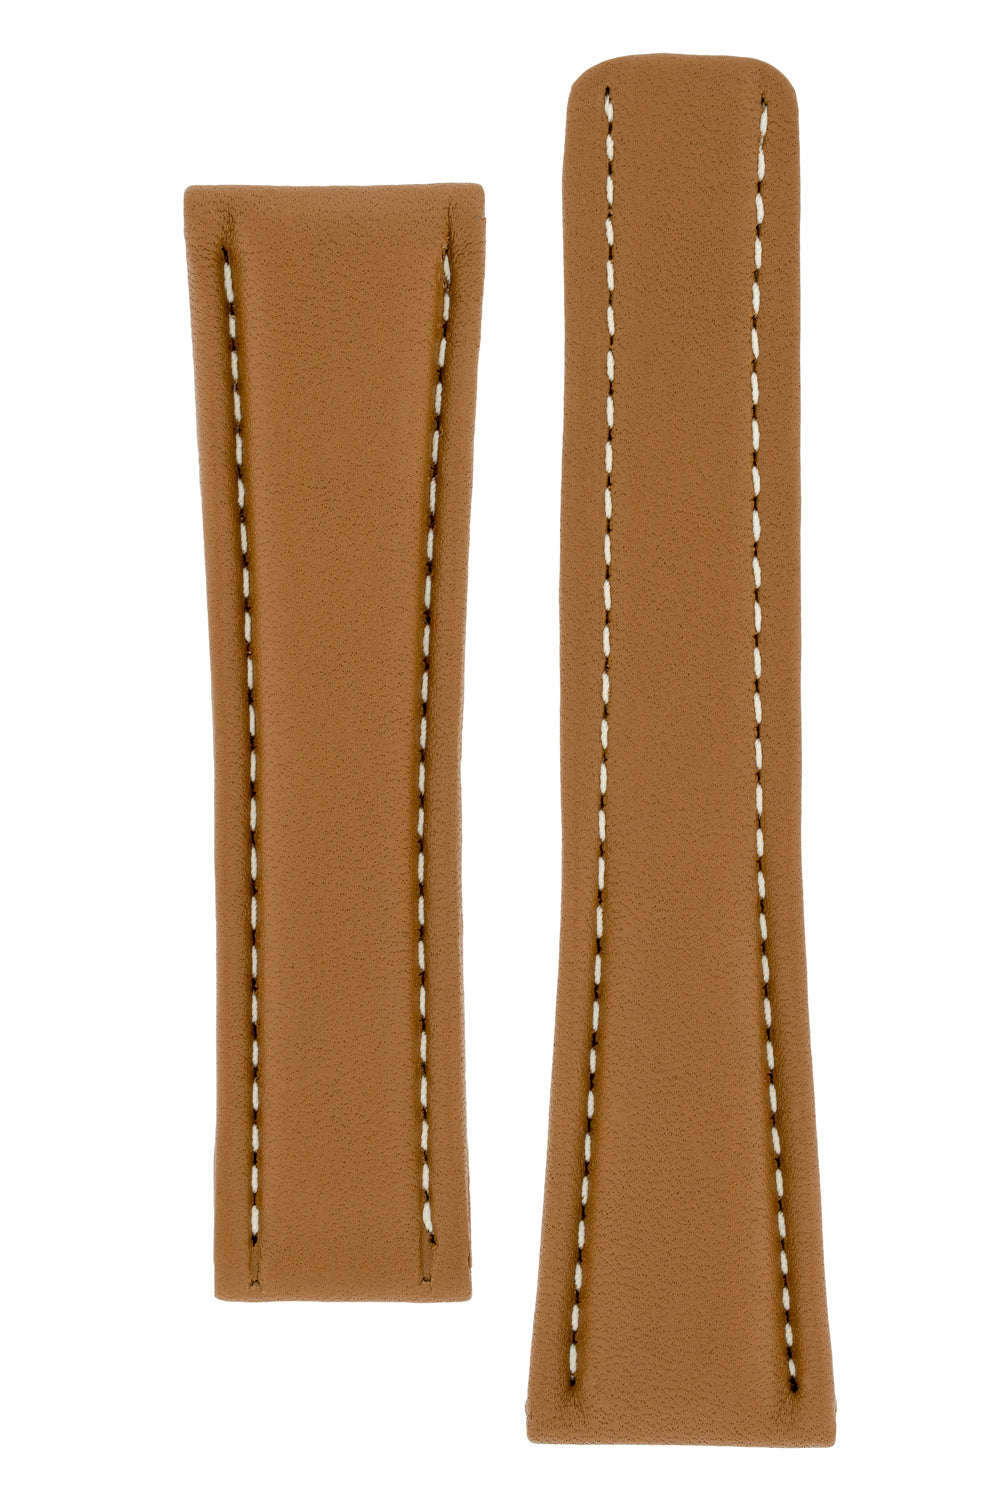 Breitling-Style Calf Deployment Watch Strap in CARAMEL